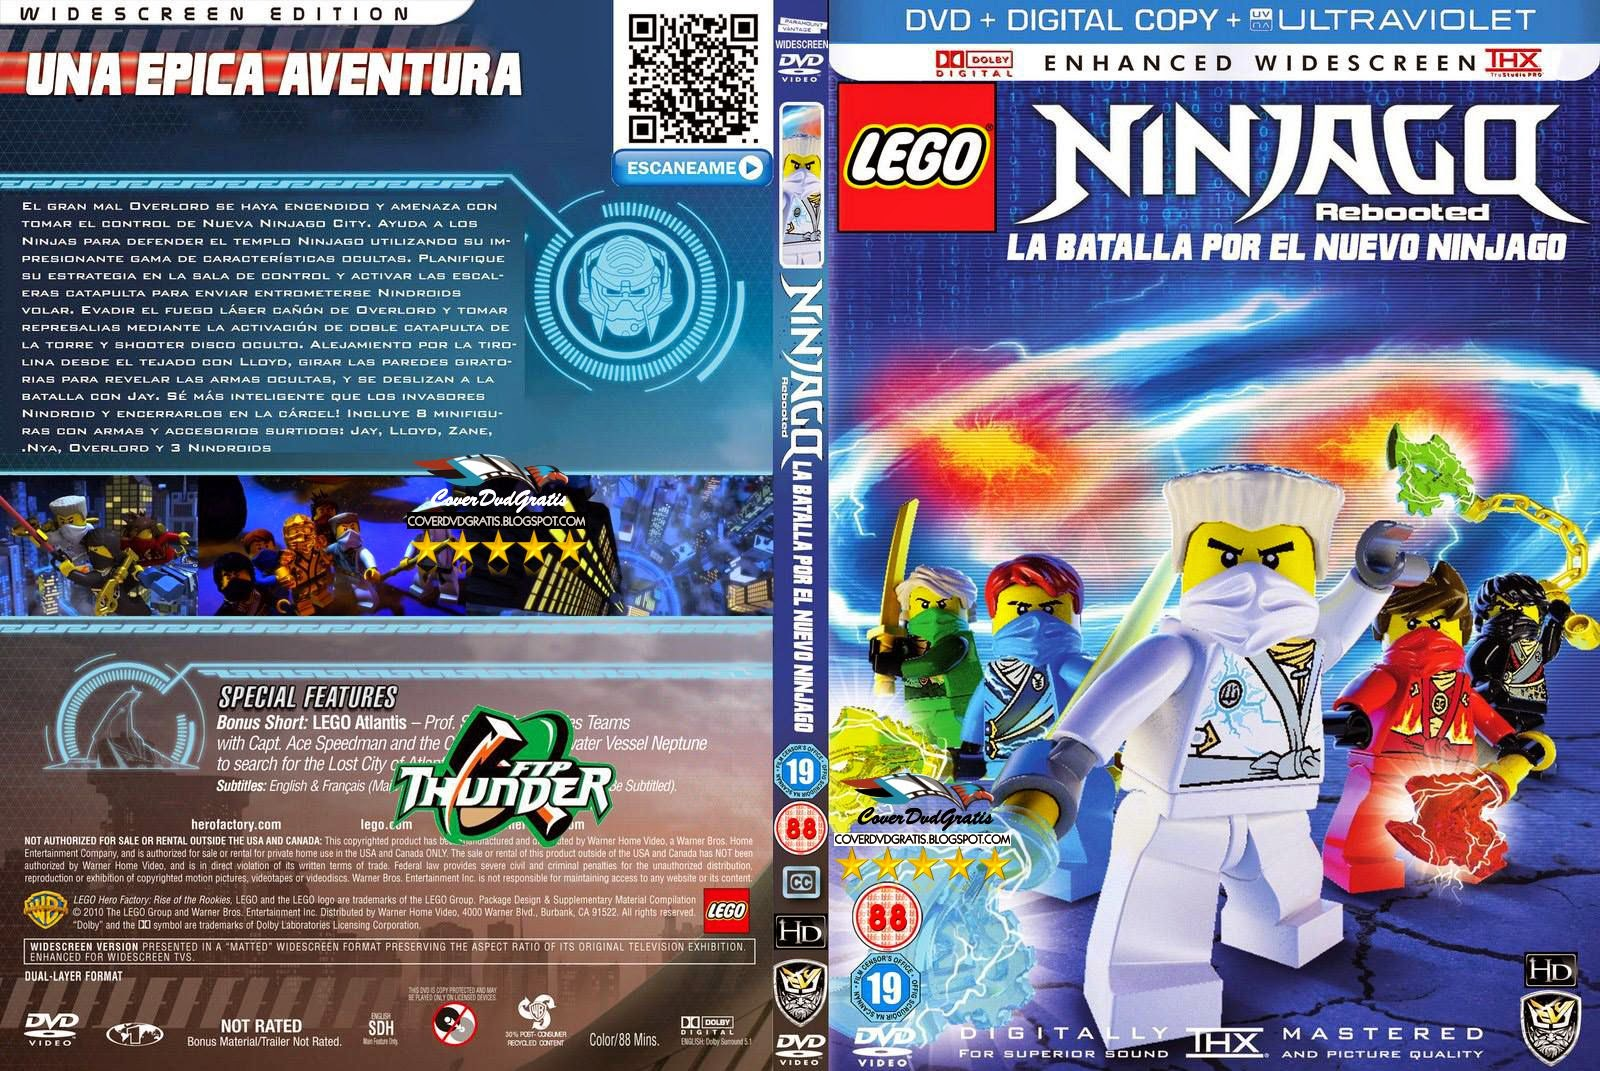 lego ninjago 2014 episode 1 rebooted